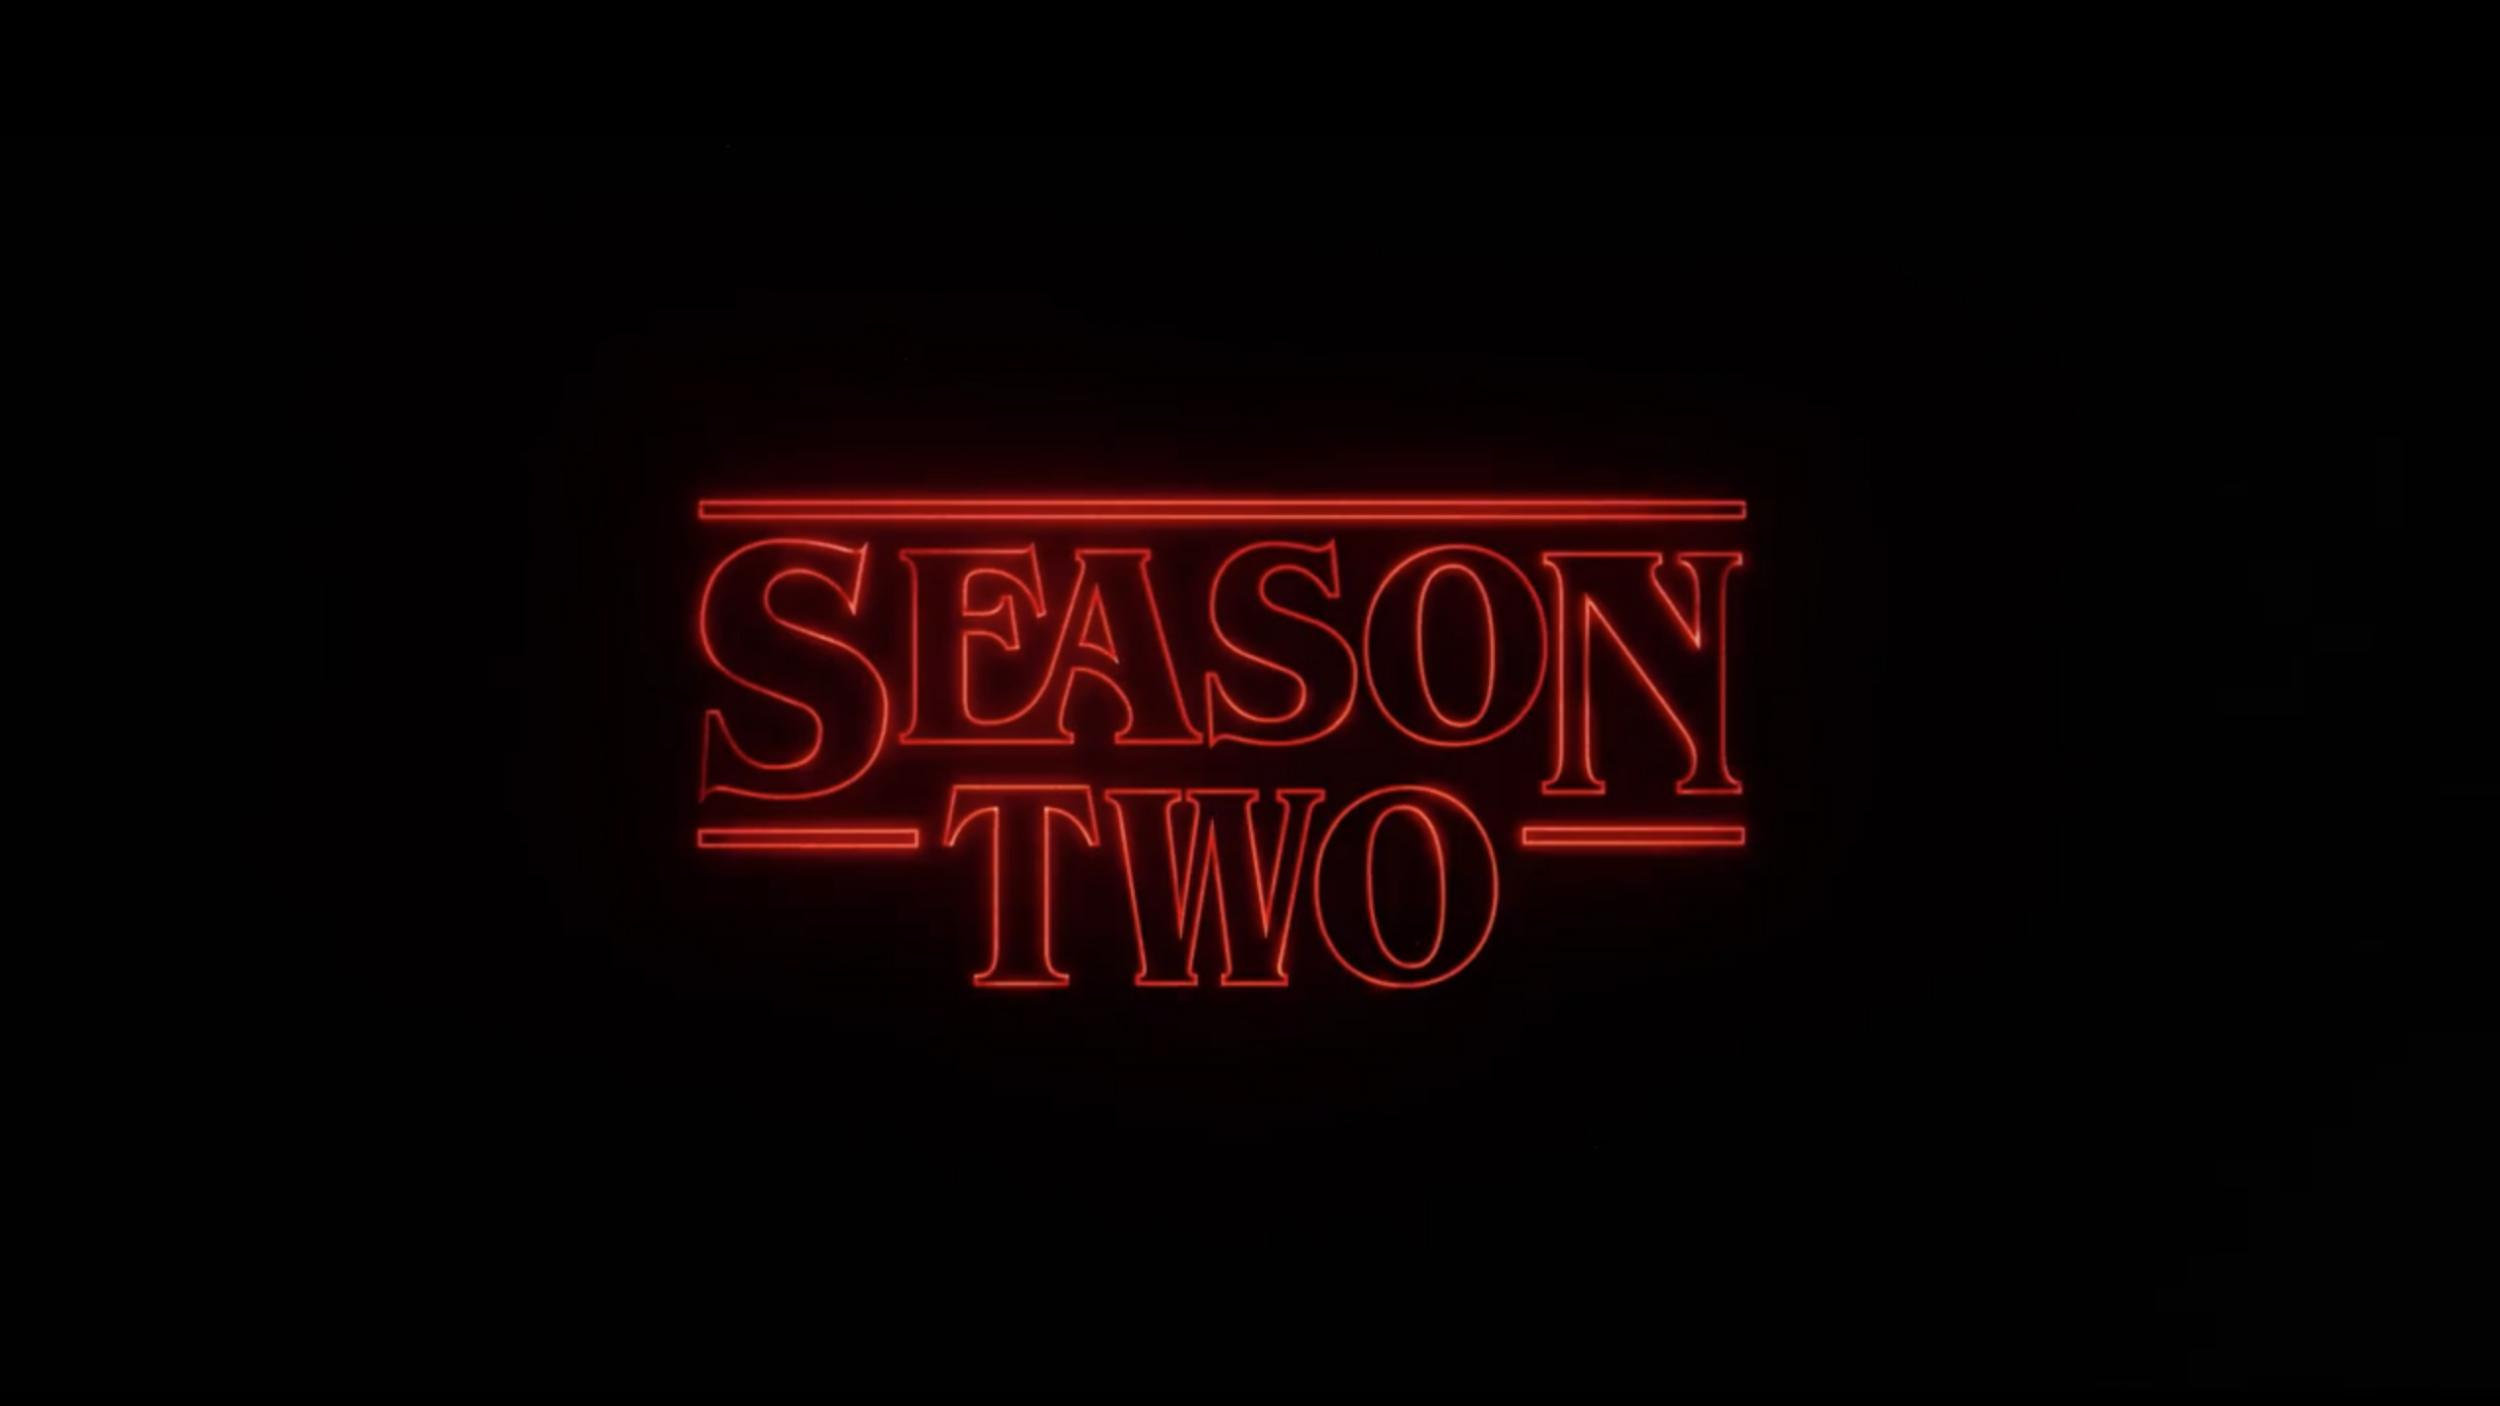 Strangers Things Season 2 Big Game Teaser